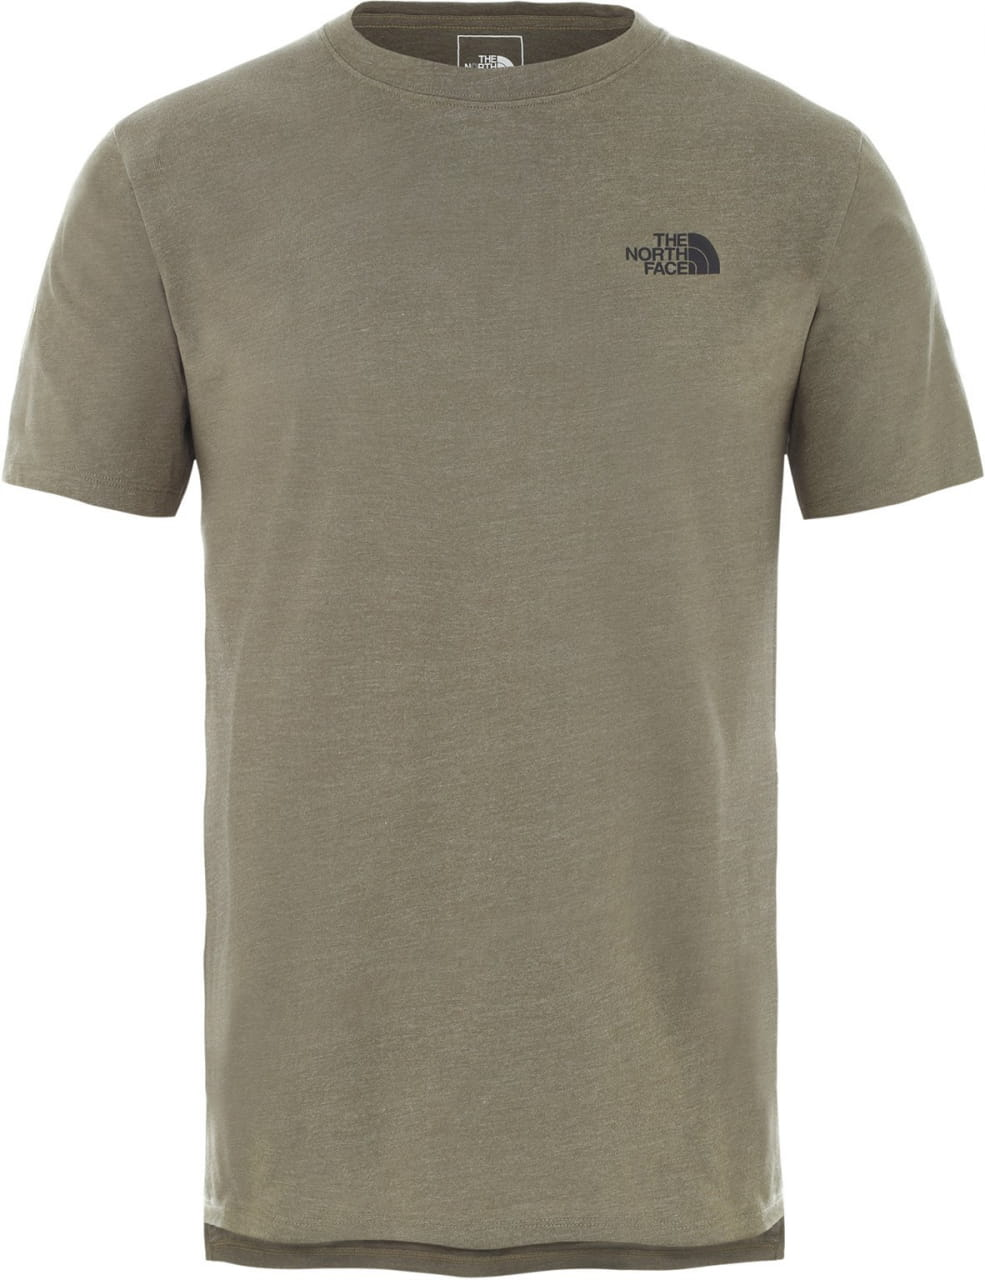 T-Shirts The North Face Men's North Dome Active T-Shirt